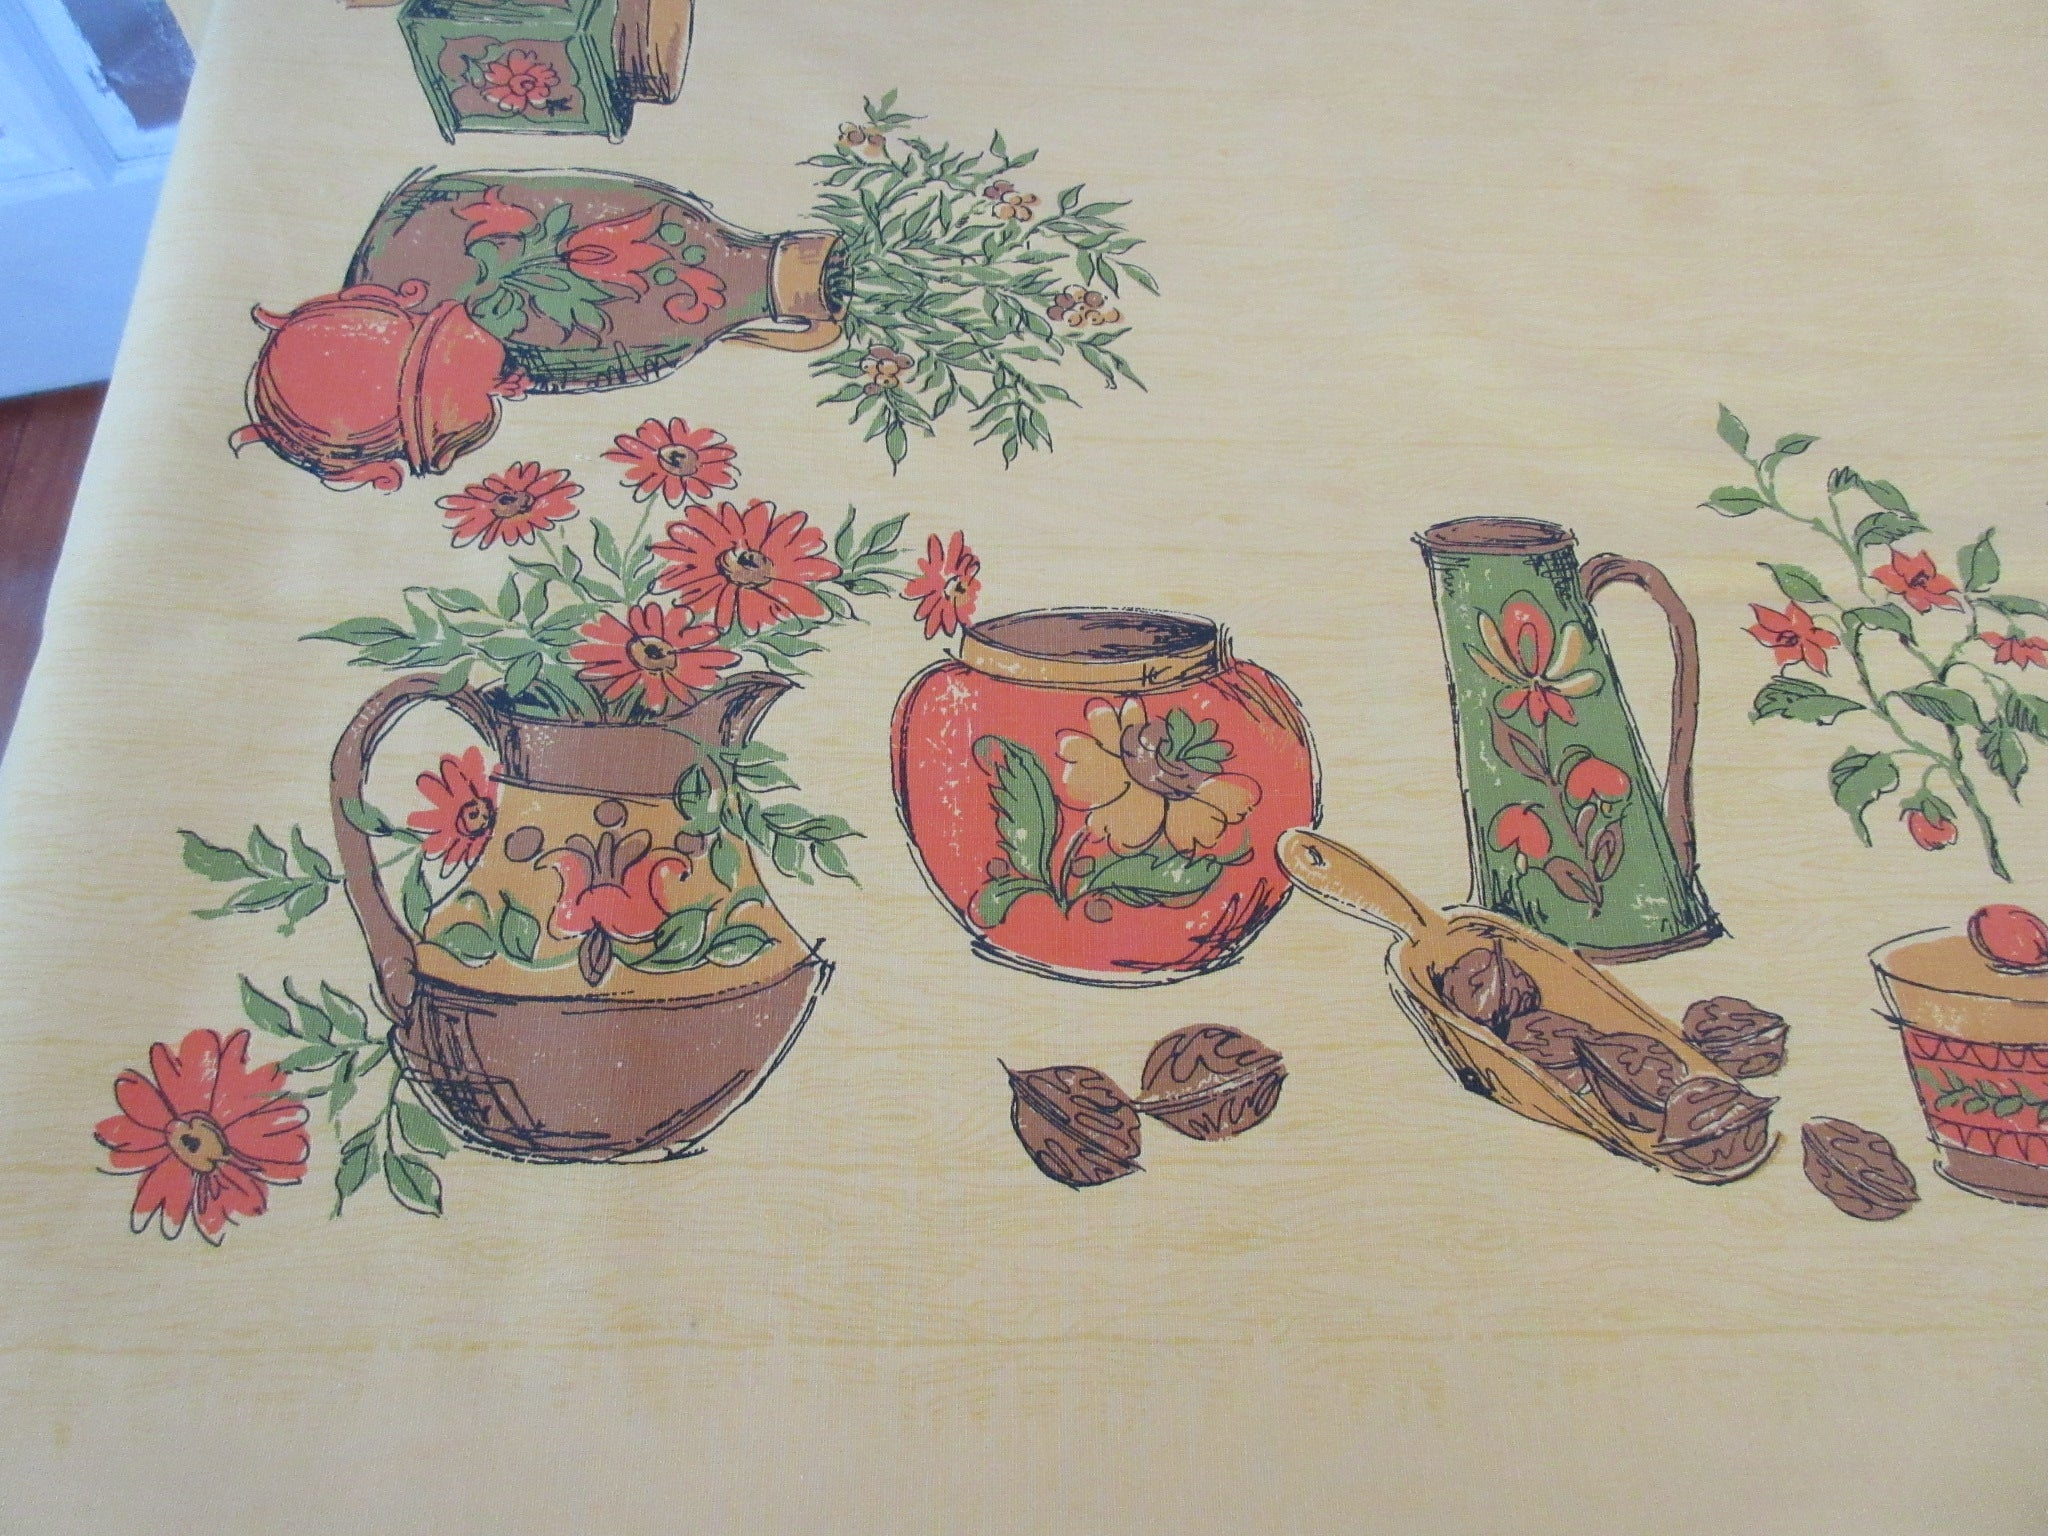 GOLD Colonial Stuff Cutter Novelty Floral Vintage Printed Tablecloth (70 X 50)